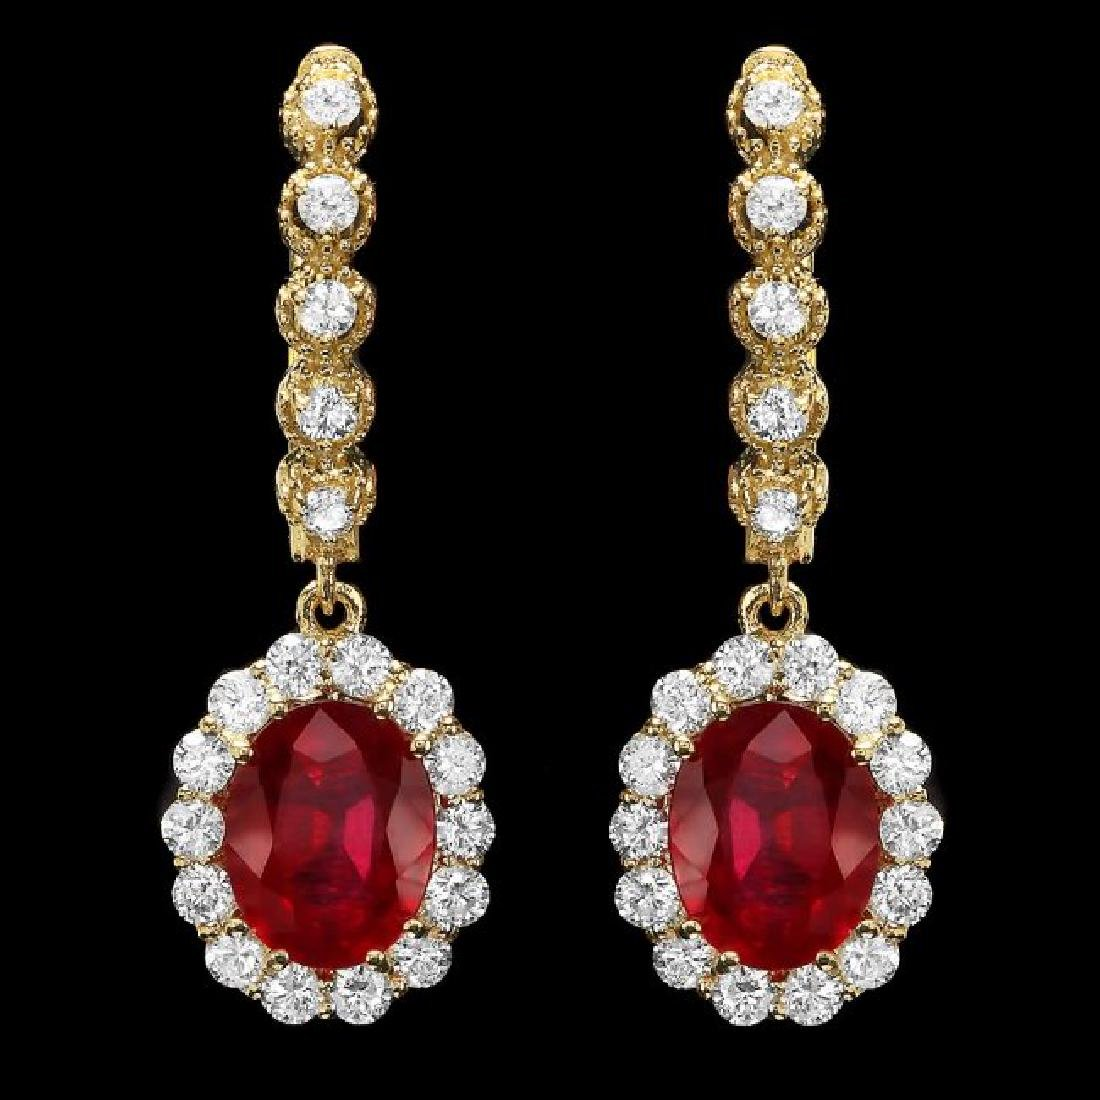 14k Gold 5.00ct Ruby 1.40ct Diamond Earrings